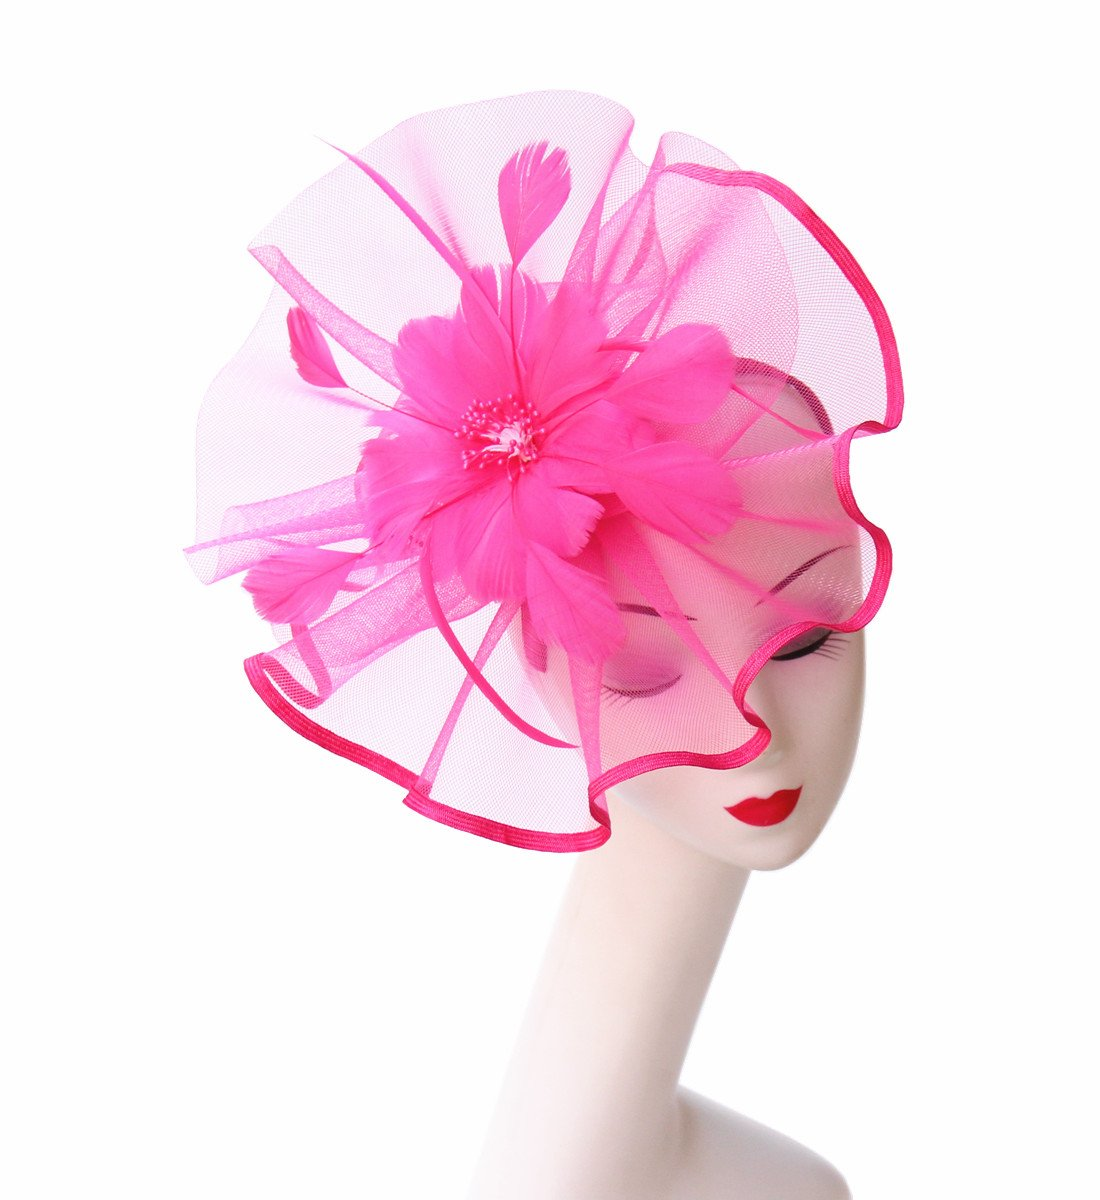 SAFERIN Fascinator Hat Feather Mesh Net Veil Party Hat Flower Kentucky Derby Hat with Clip and Hairband Wedding Fascinators (TA1-Fluorescence Fuchsia)